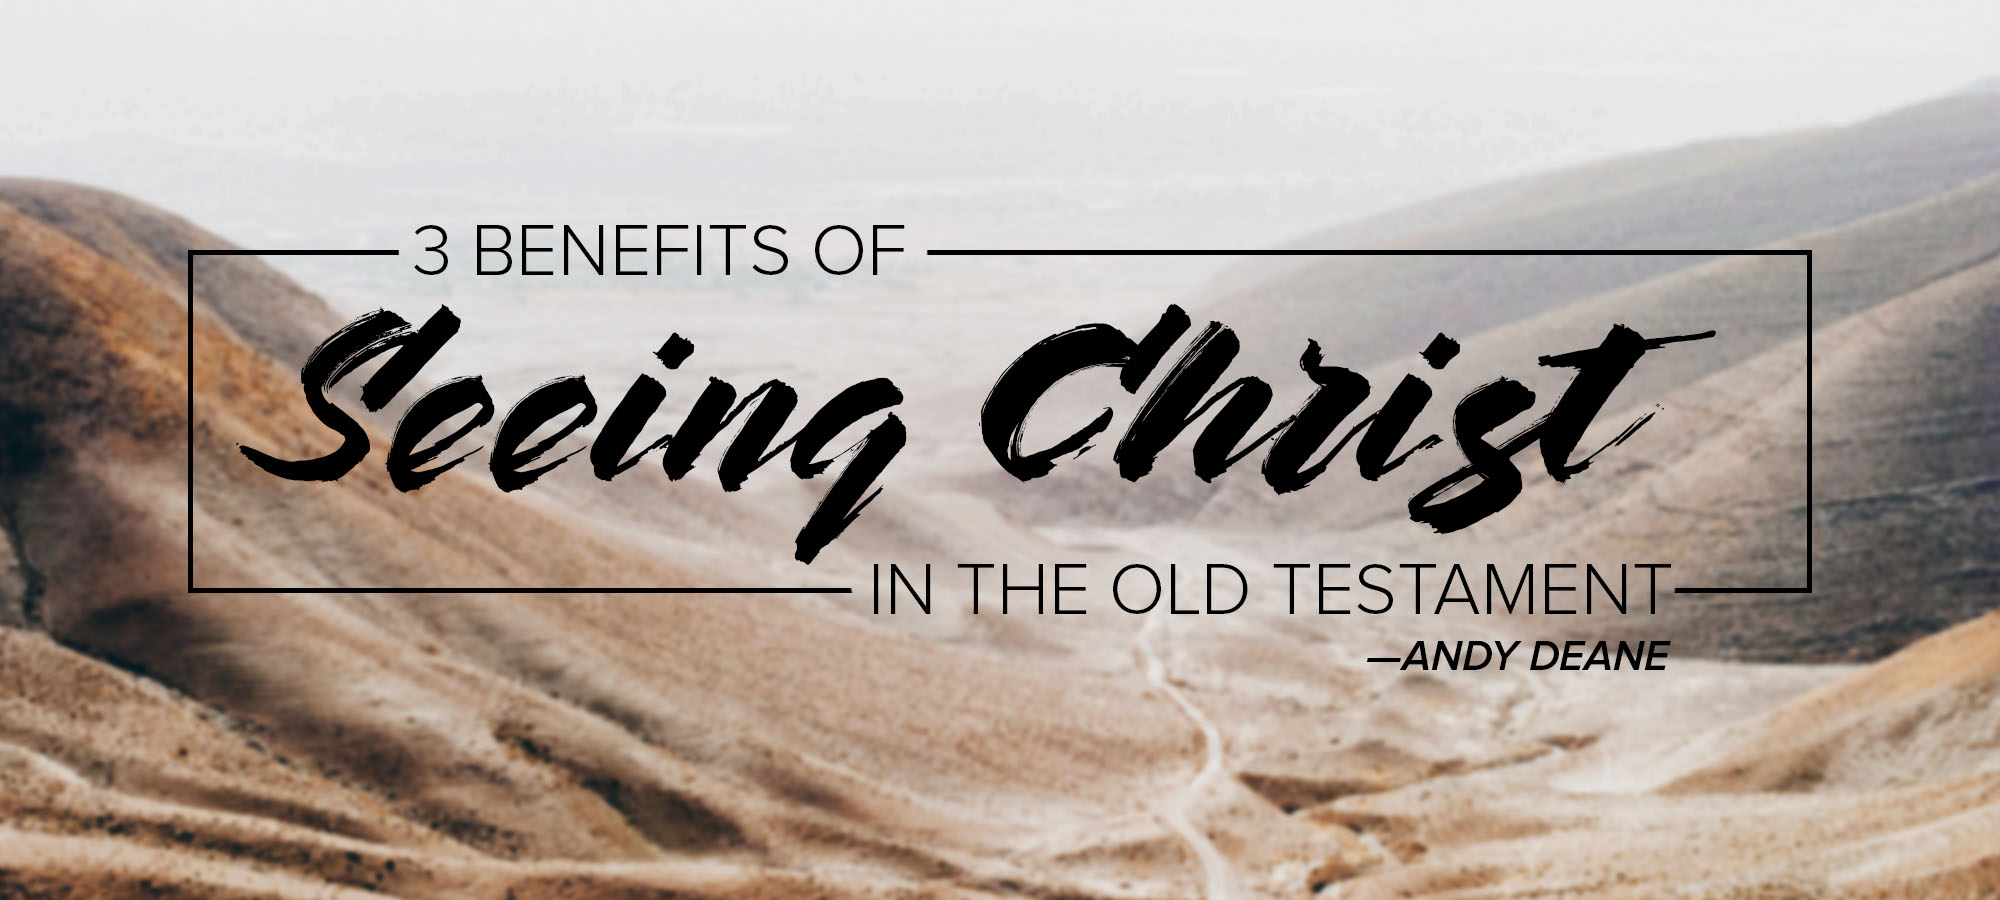 Three Benefits of Seeing Christ in the Old Testament